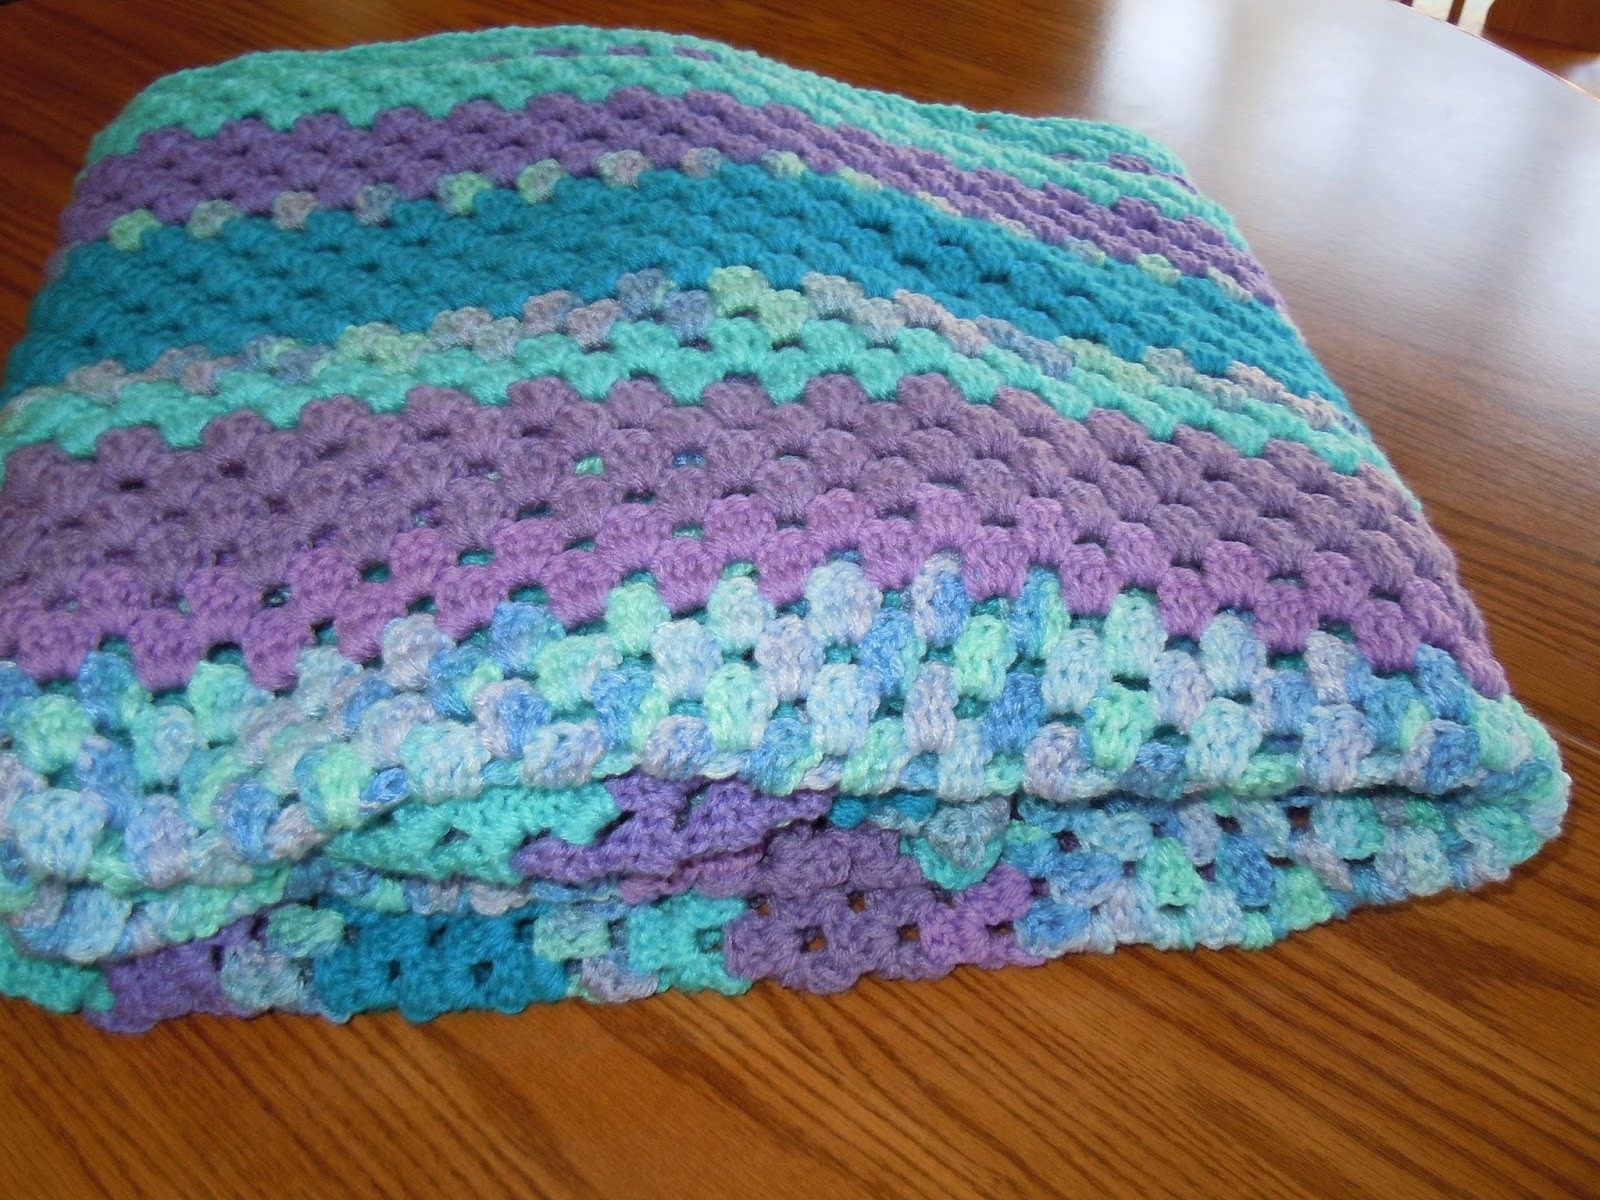 Craftdrawer Crafts How to Crochet a Granny Square Afghan